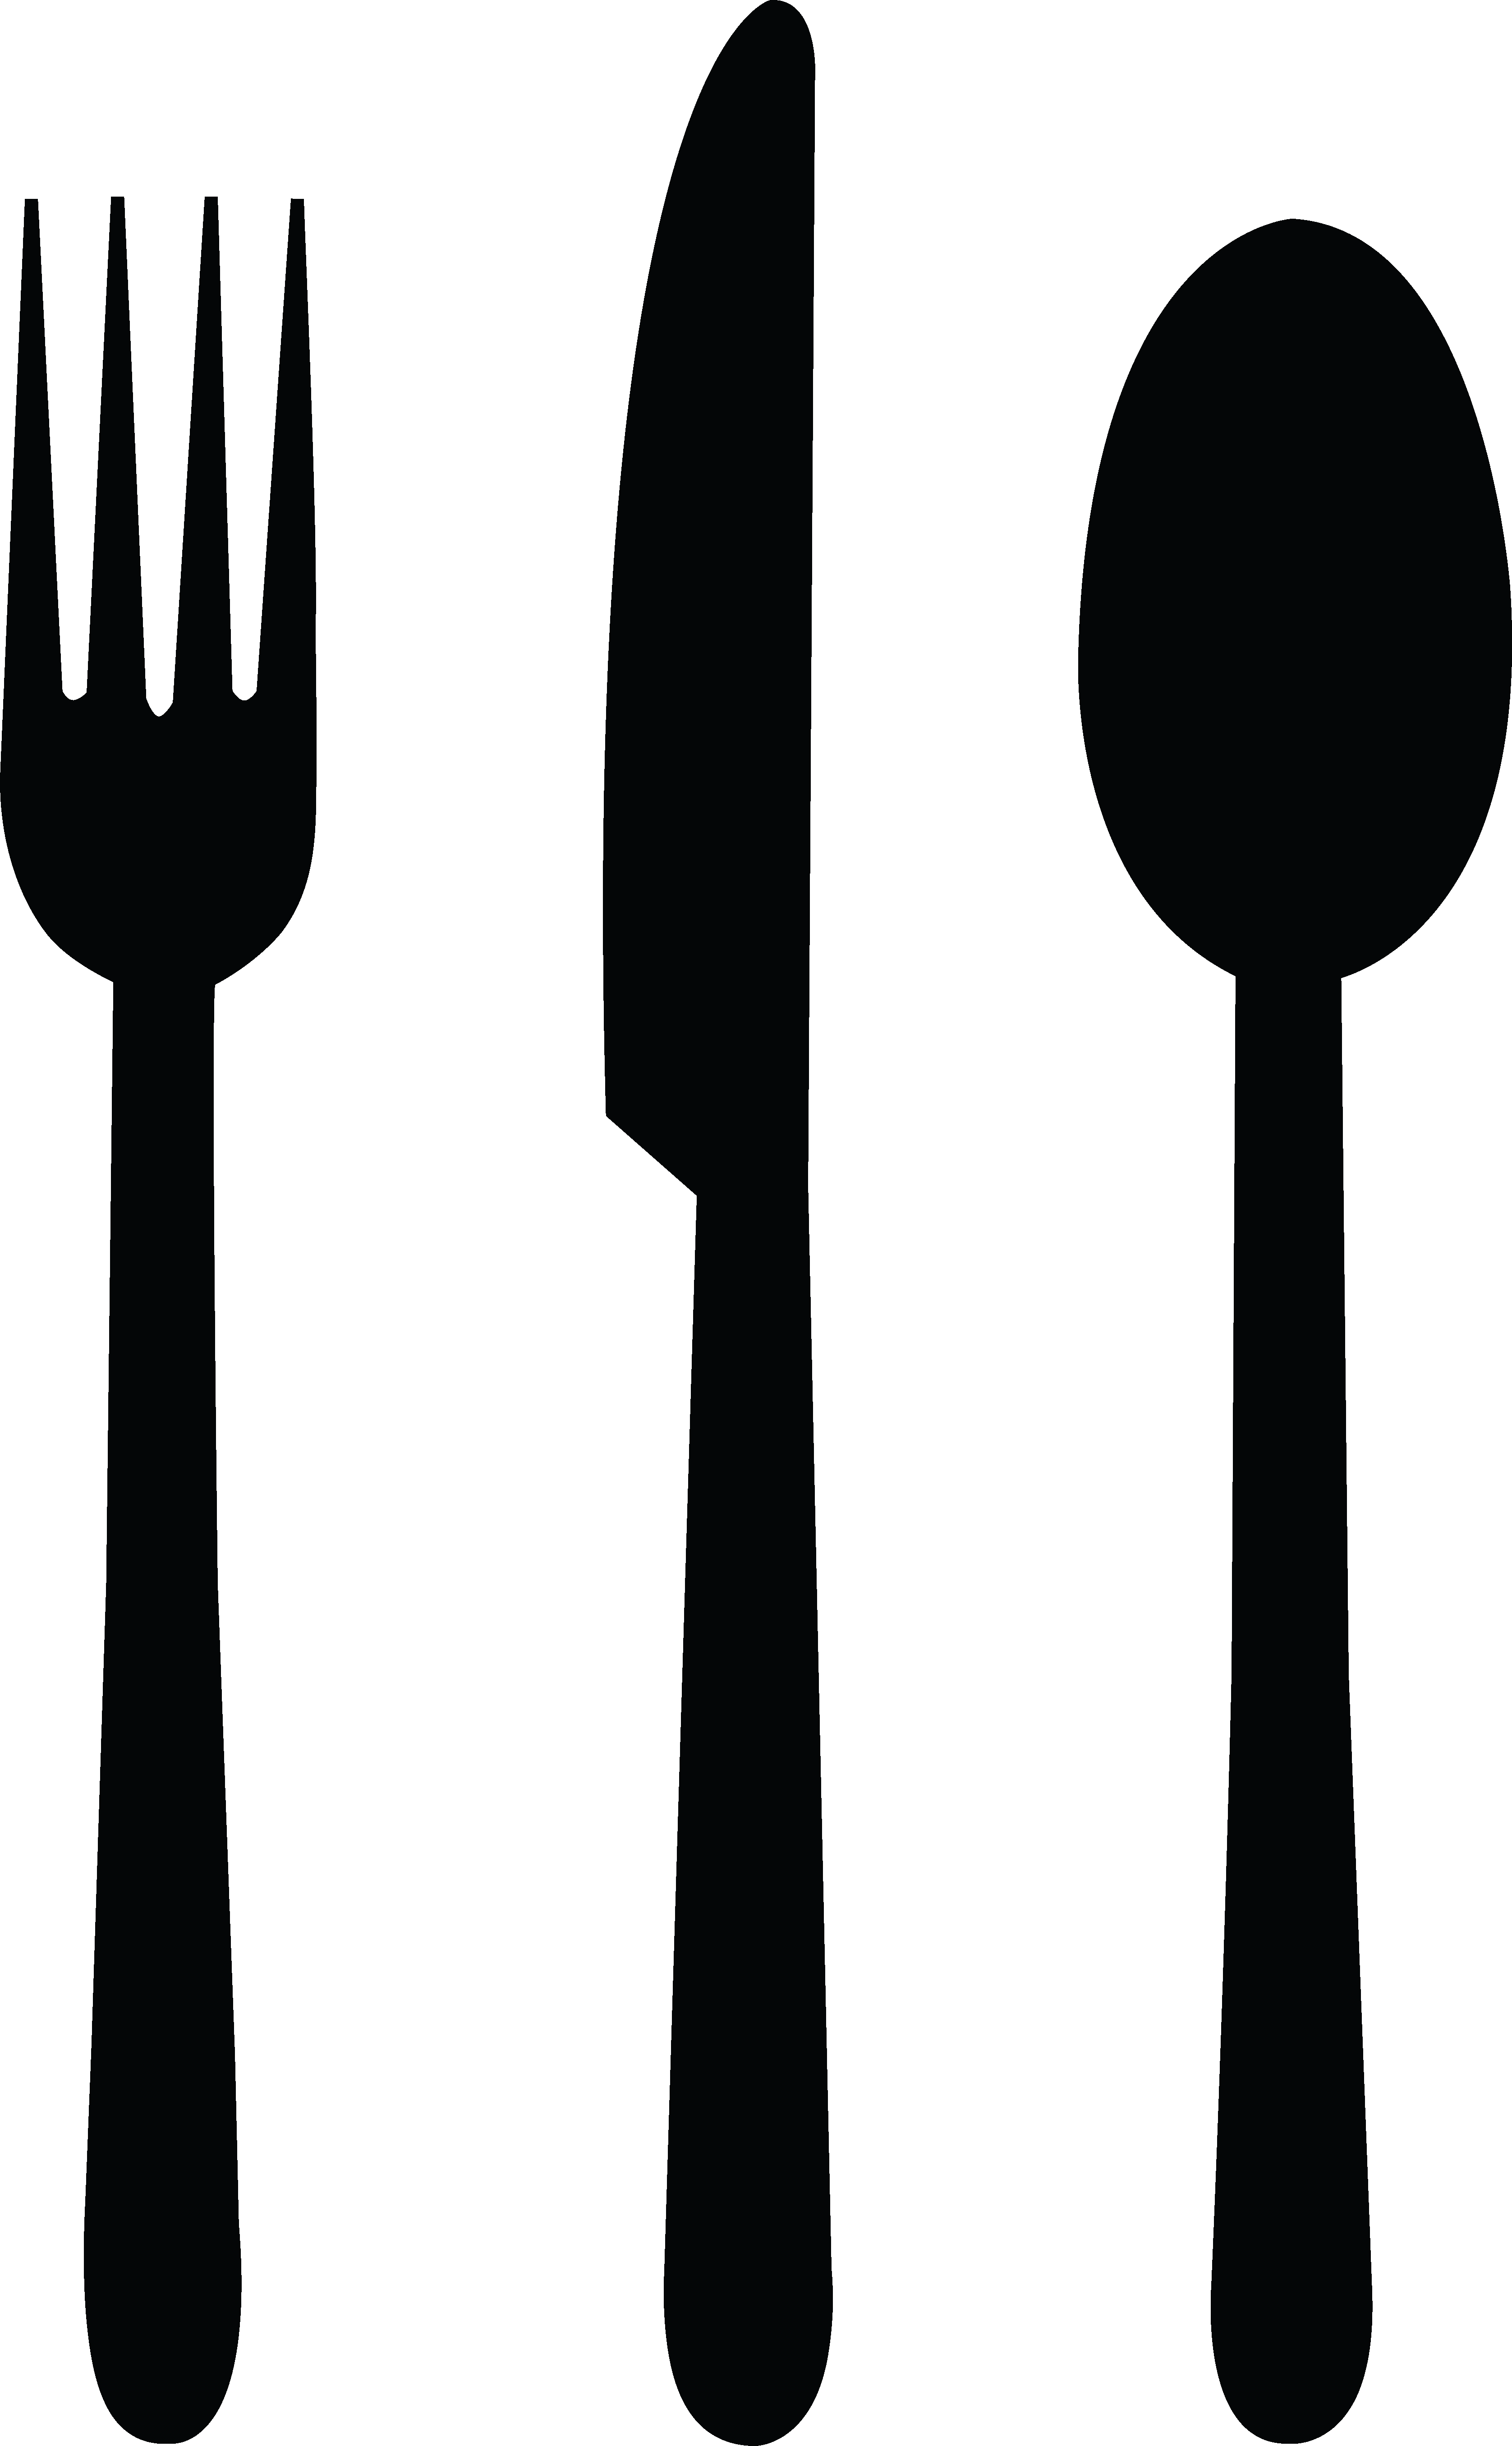 Fork knife clipart png. Spoon black free icons